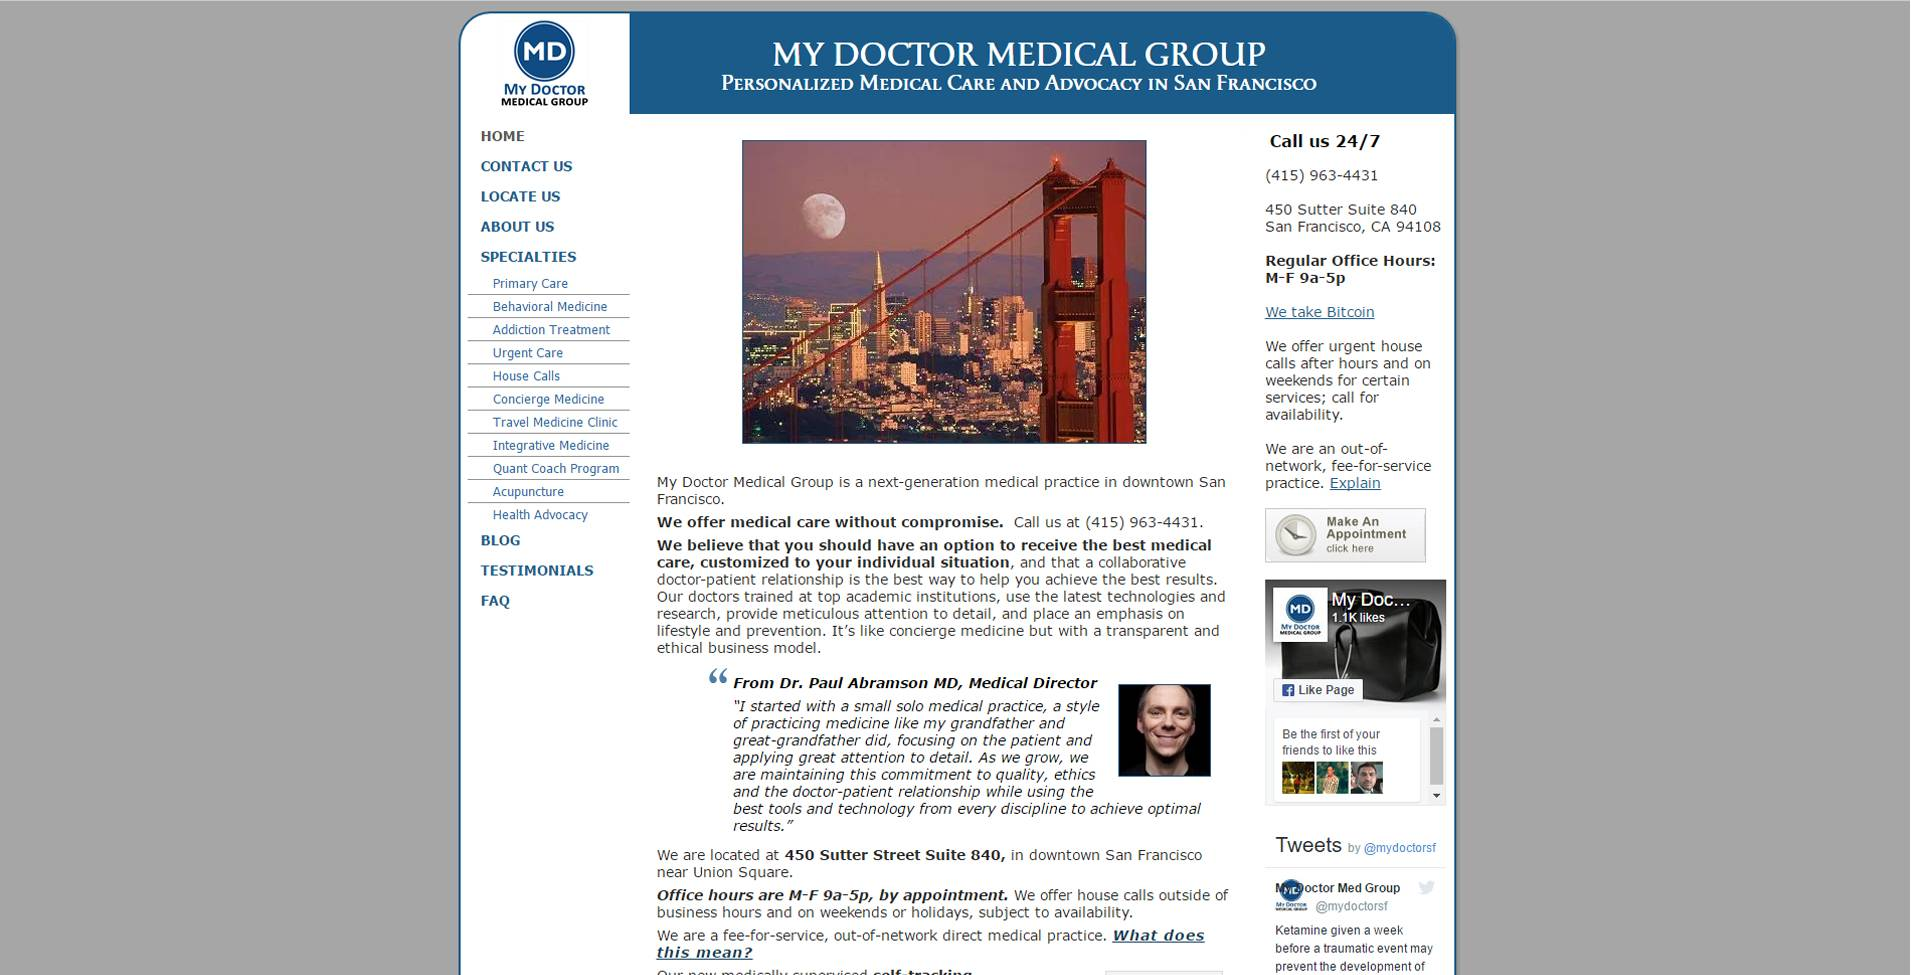 My Doctor Medical Group